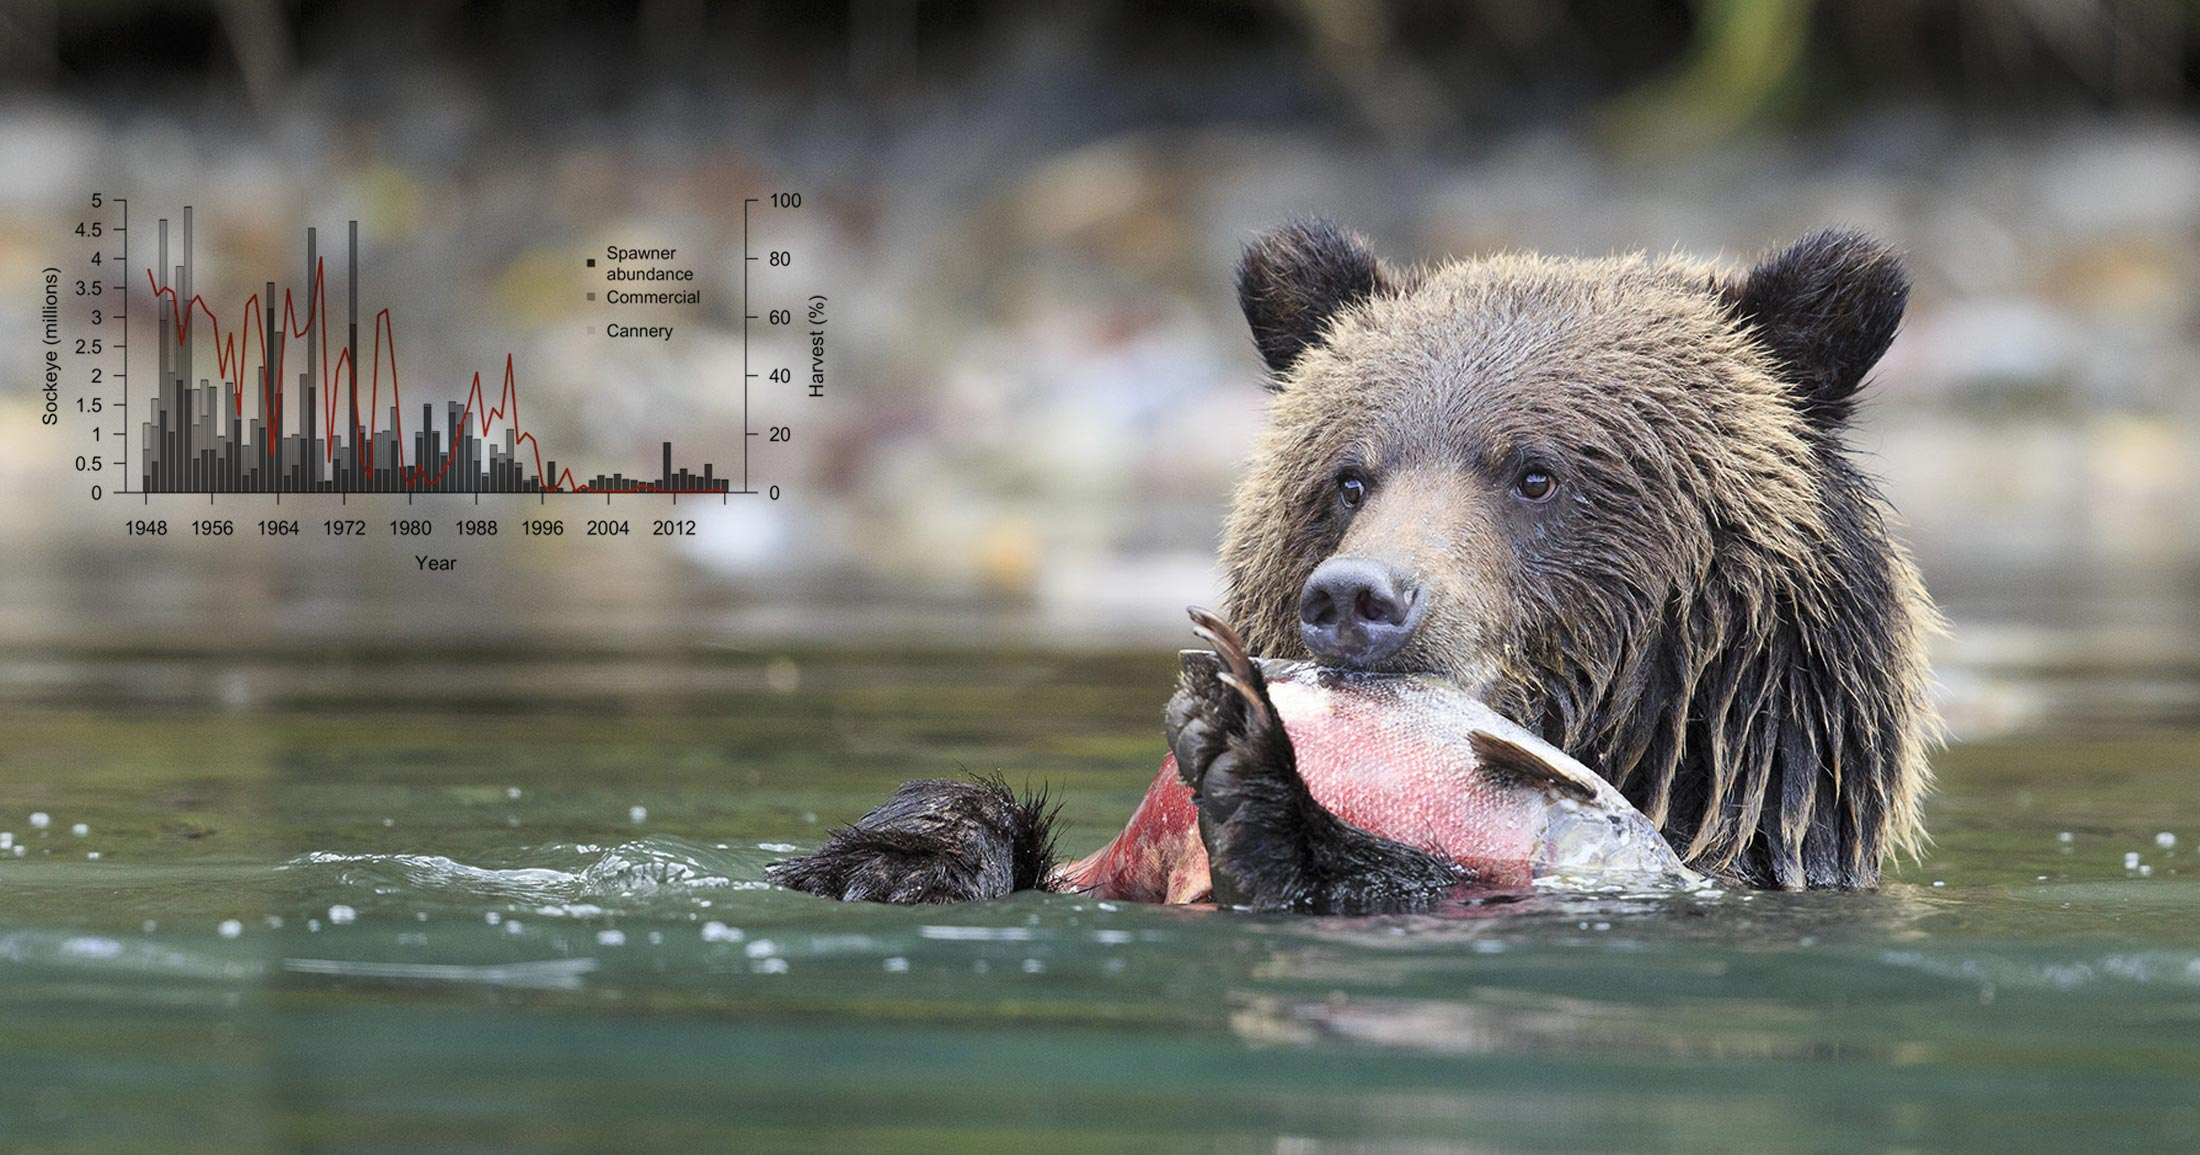 A grizzly bear sits in the water munching on a salmon in their hands.